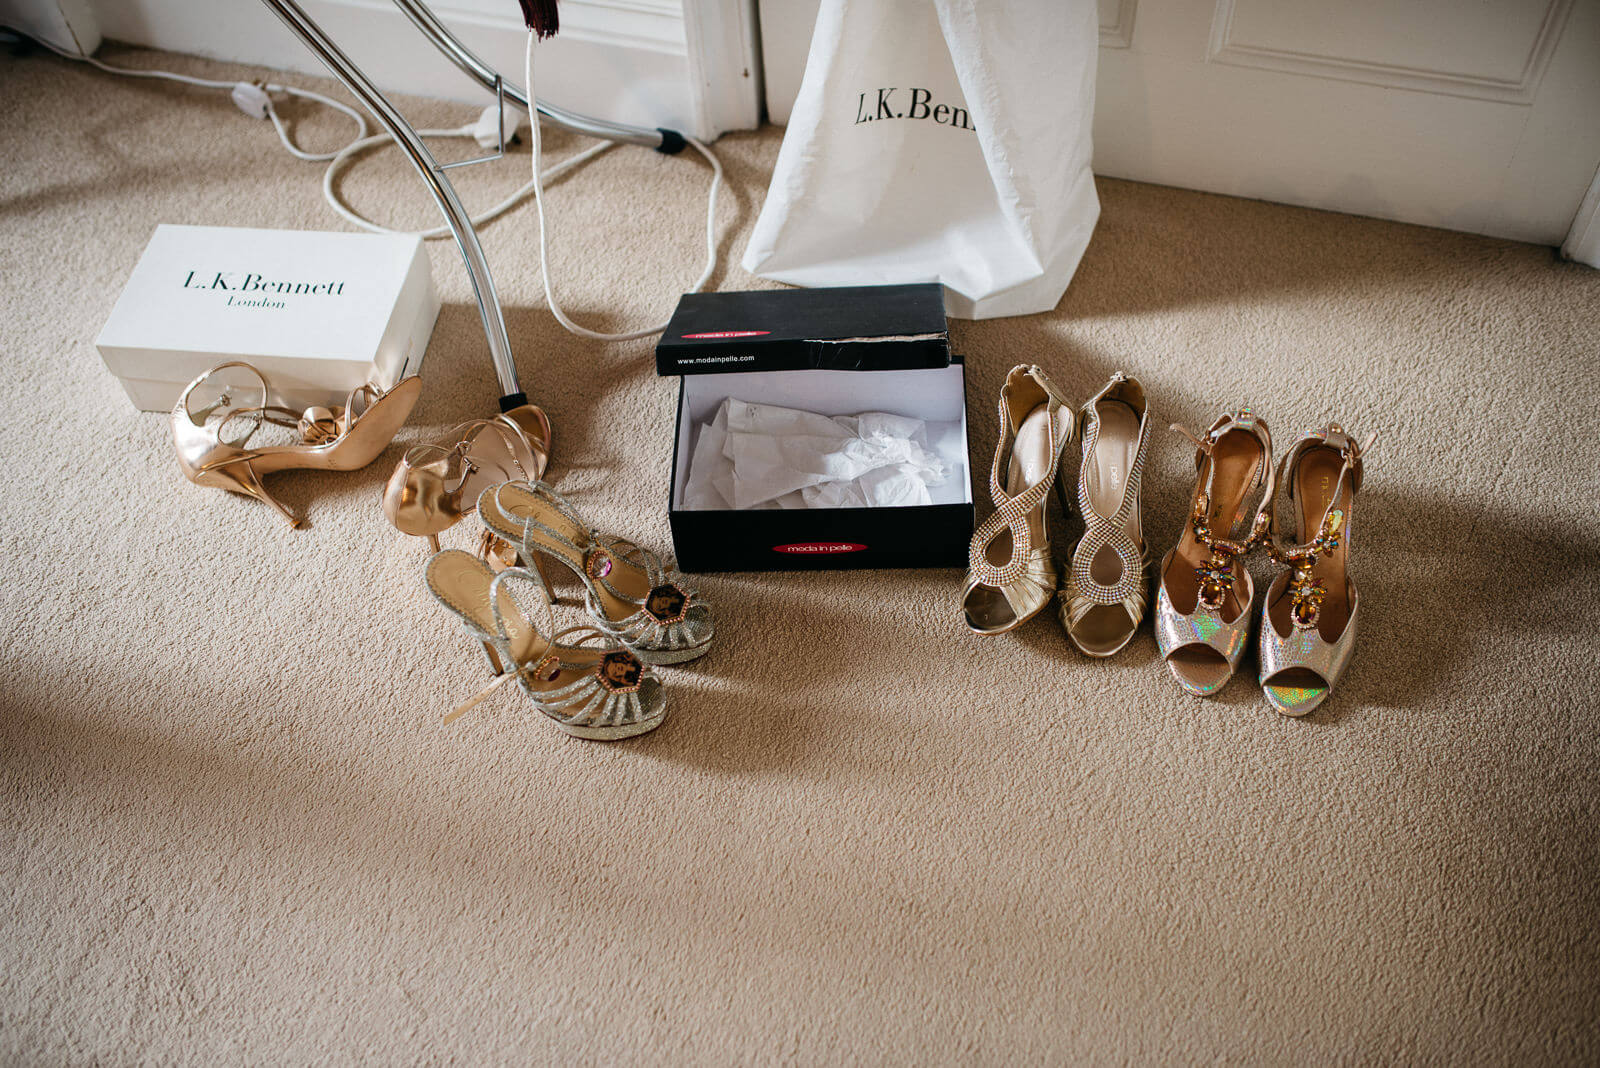 Charlotte Olympia Brides shoes and Stylish silver and glitzy Bridesmaid shoes during bridal preparations